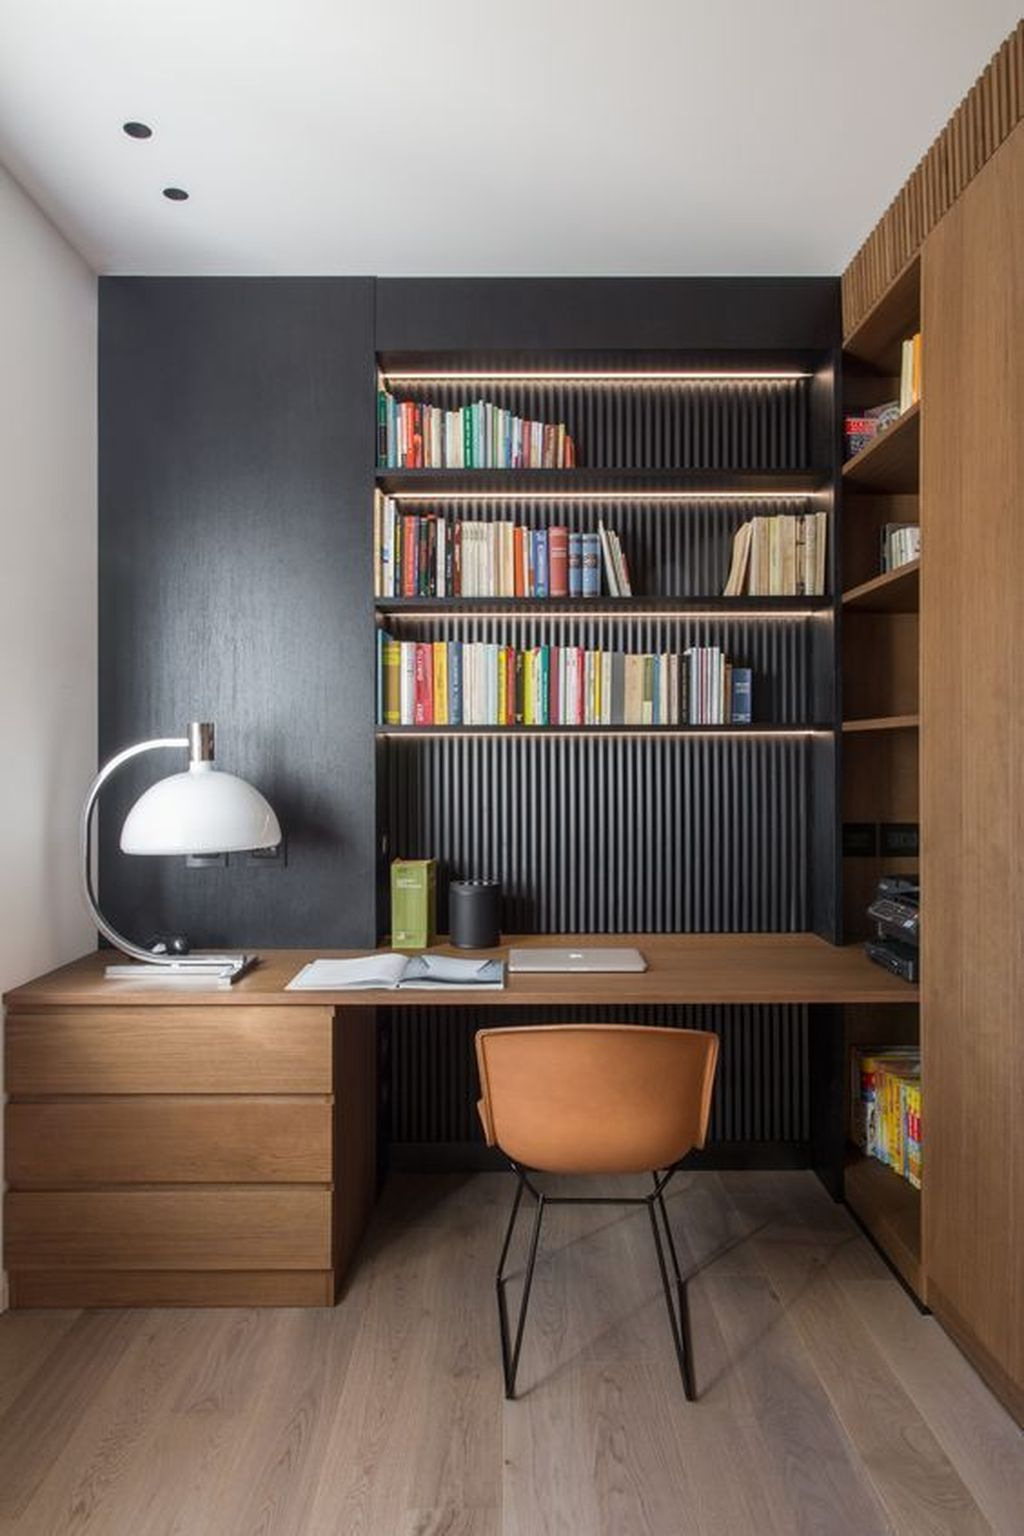 Inspiring Small Office Ideas For Small Space 11